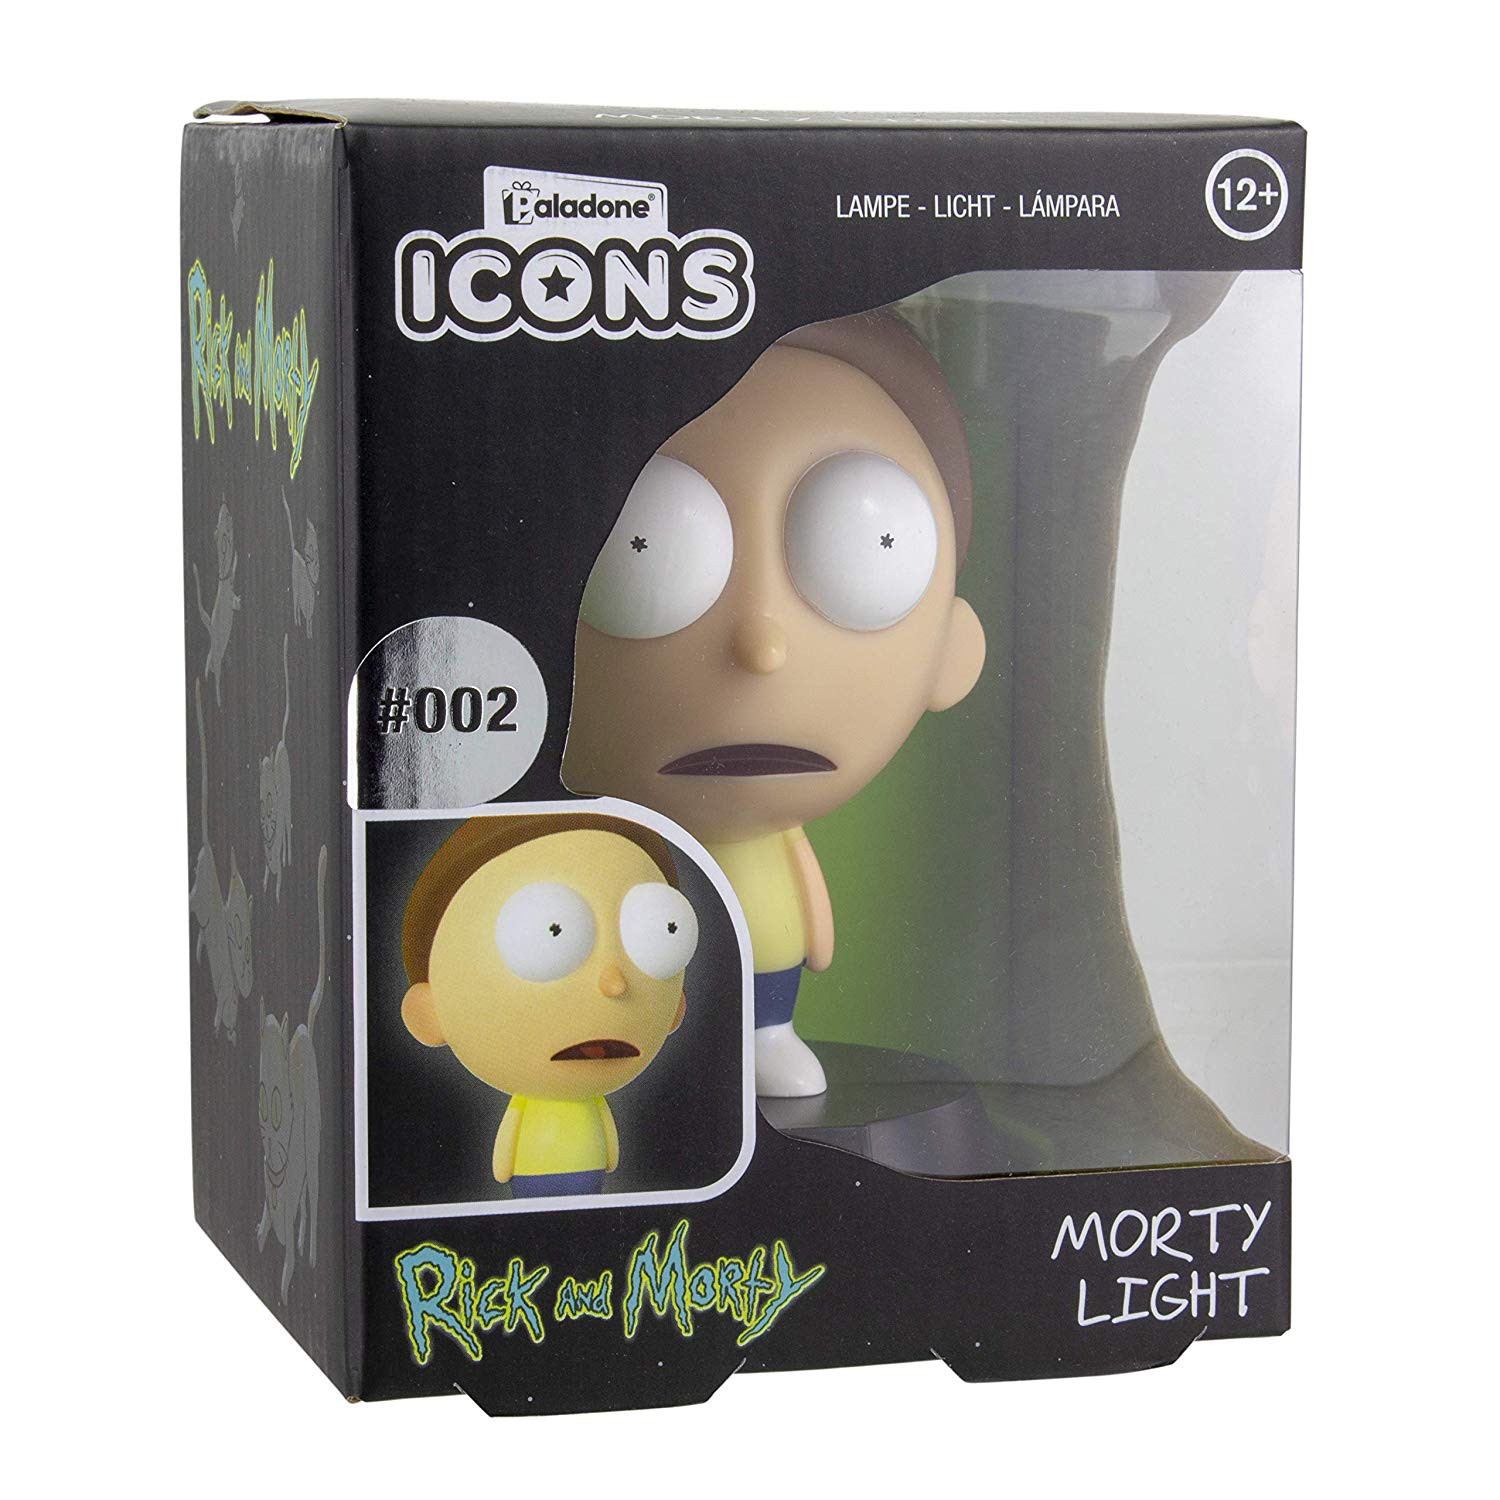 RICK AND MORTY - Morty  ICON light 10cm